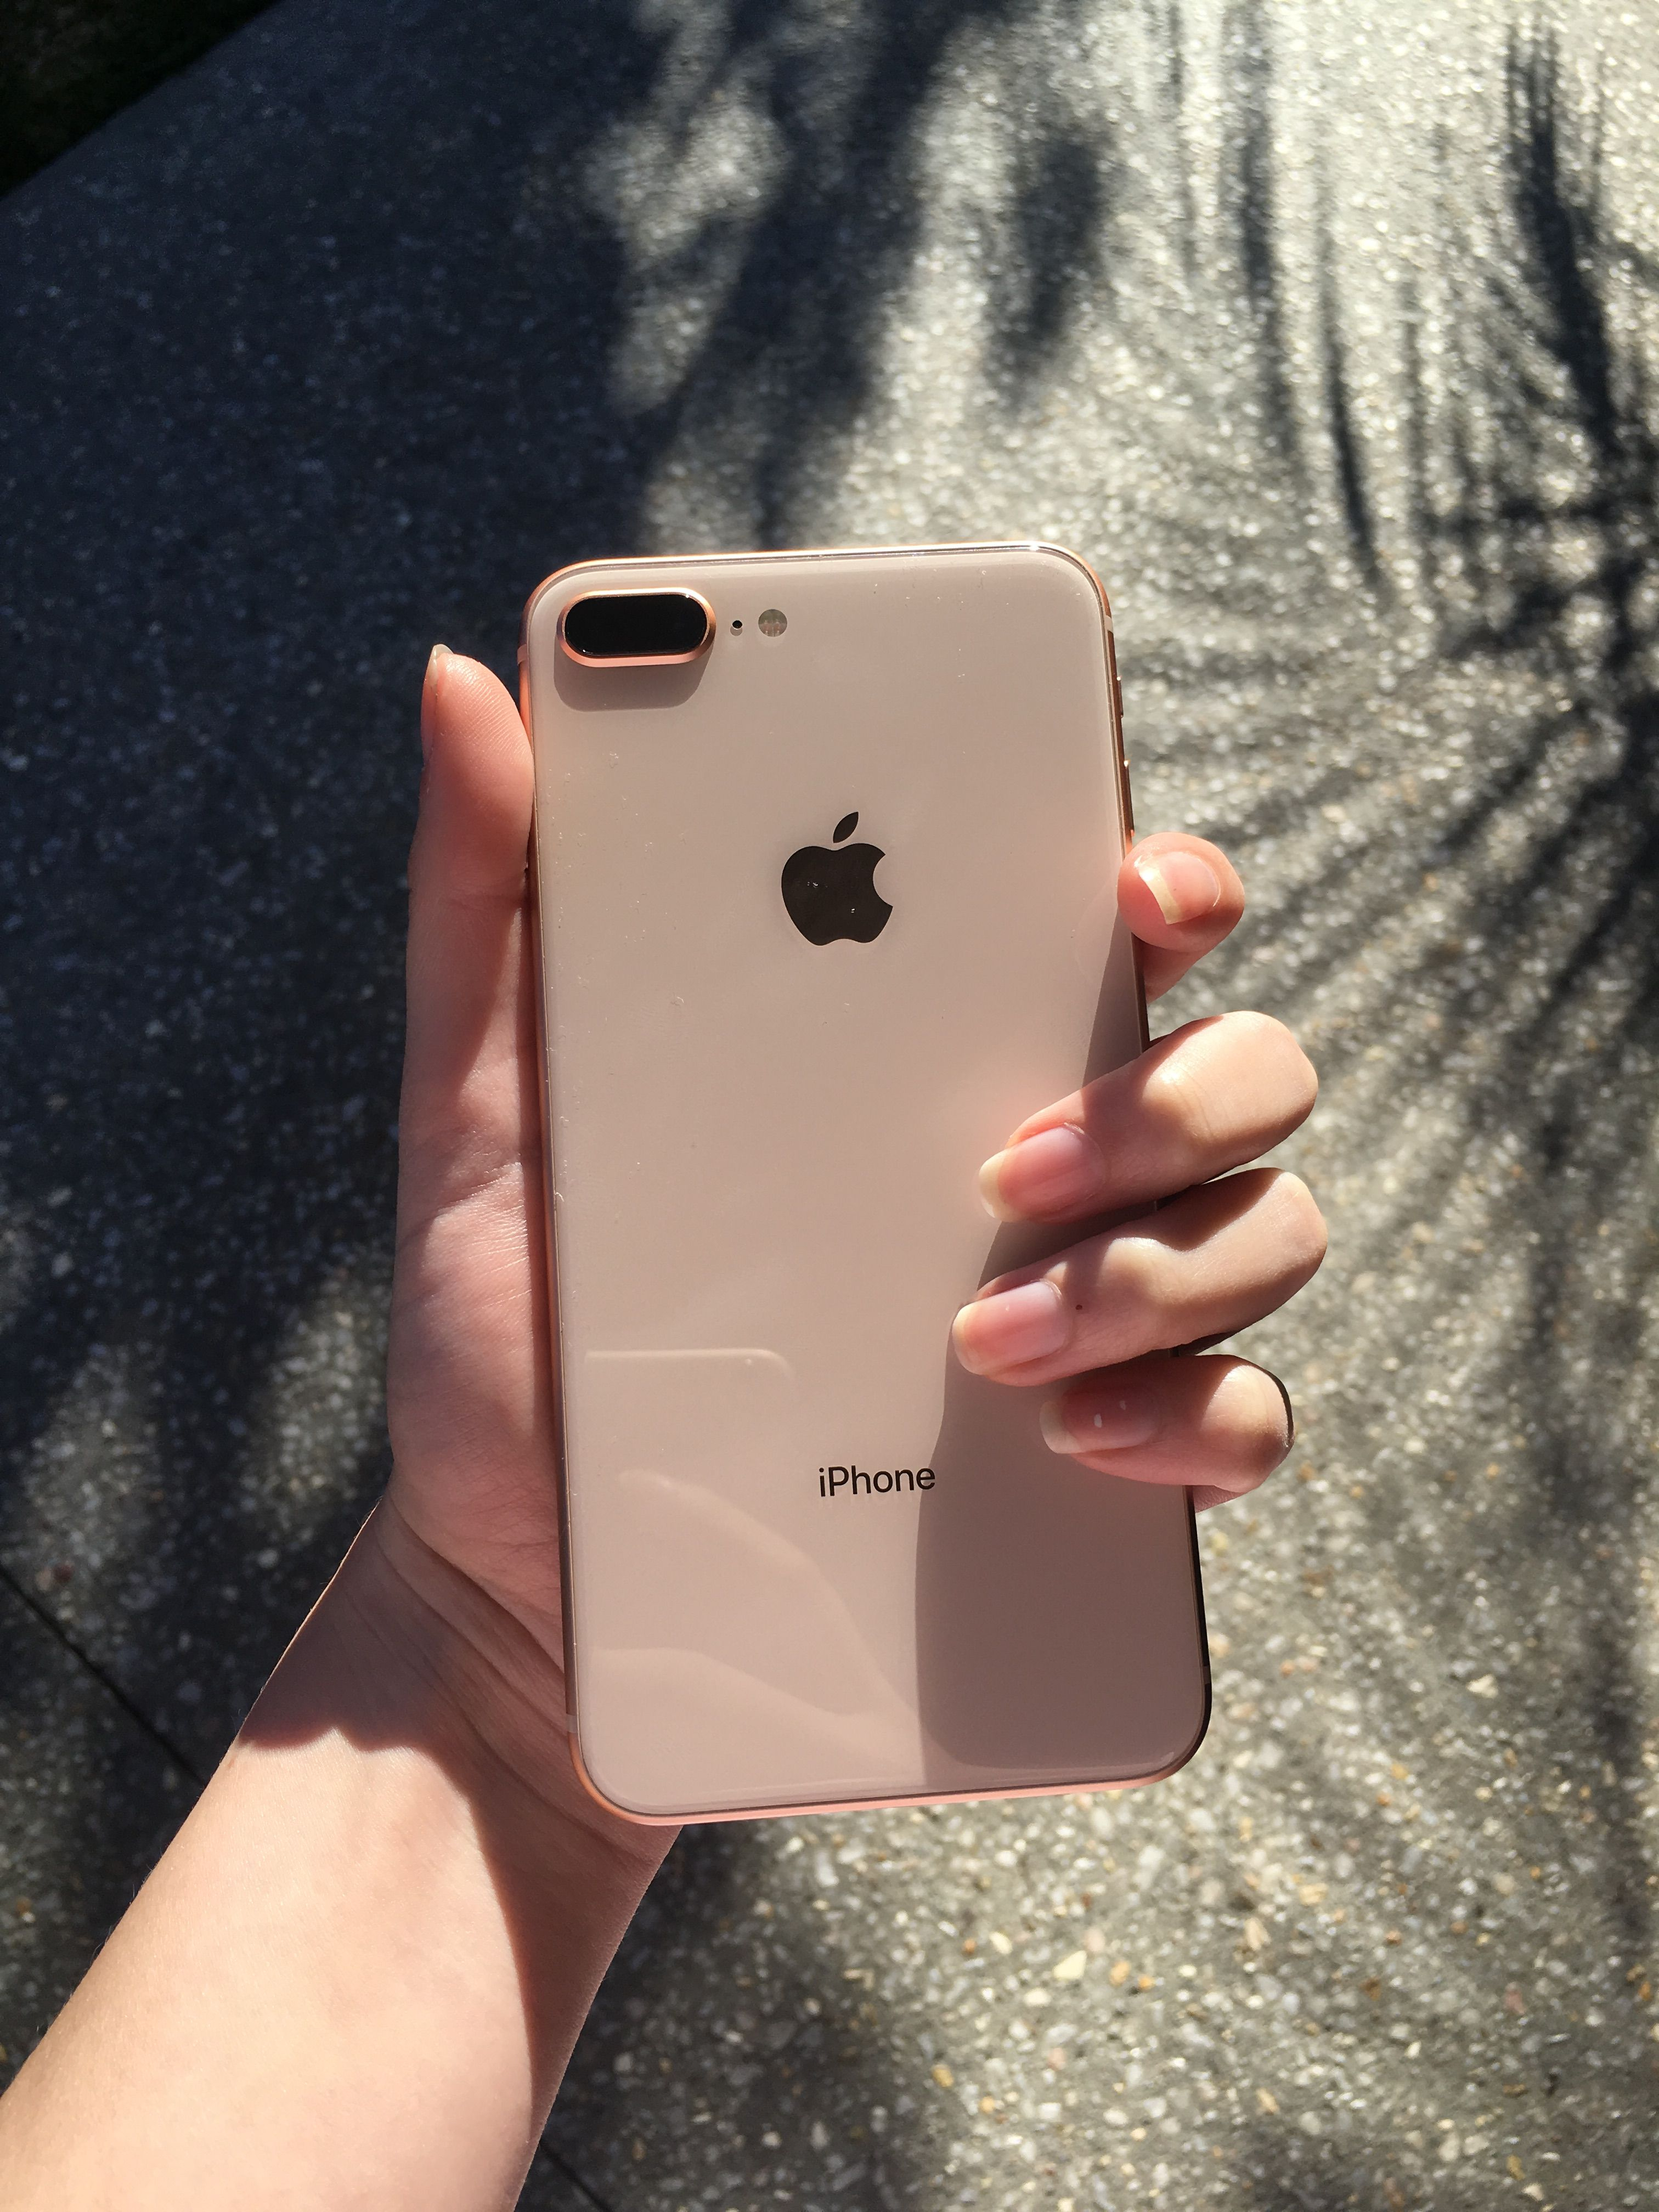 Apple Product Iphone 8 Plus Rosegold Technology Iphone8plus